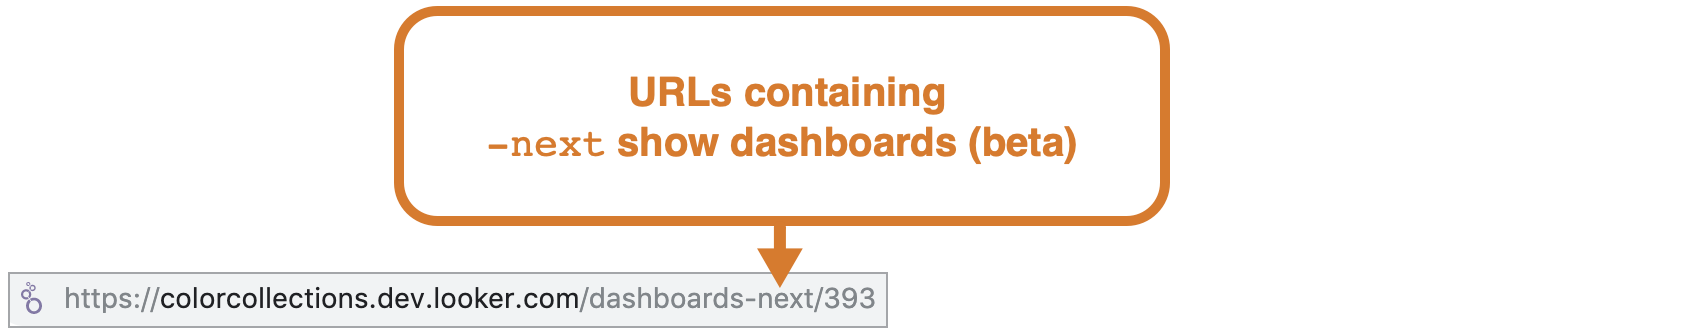 new-dashboards-next-url-624.png